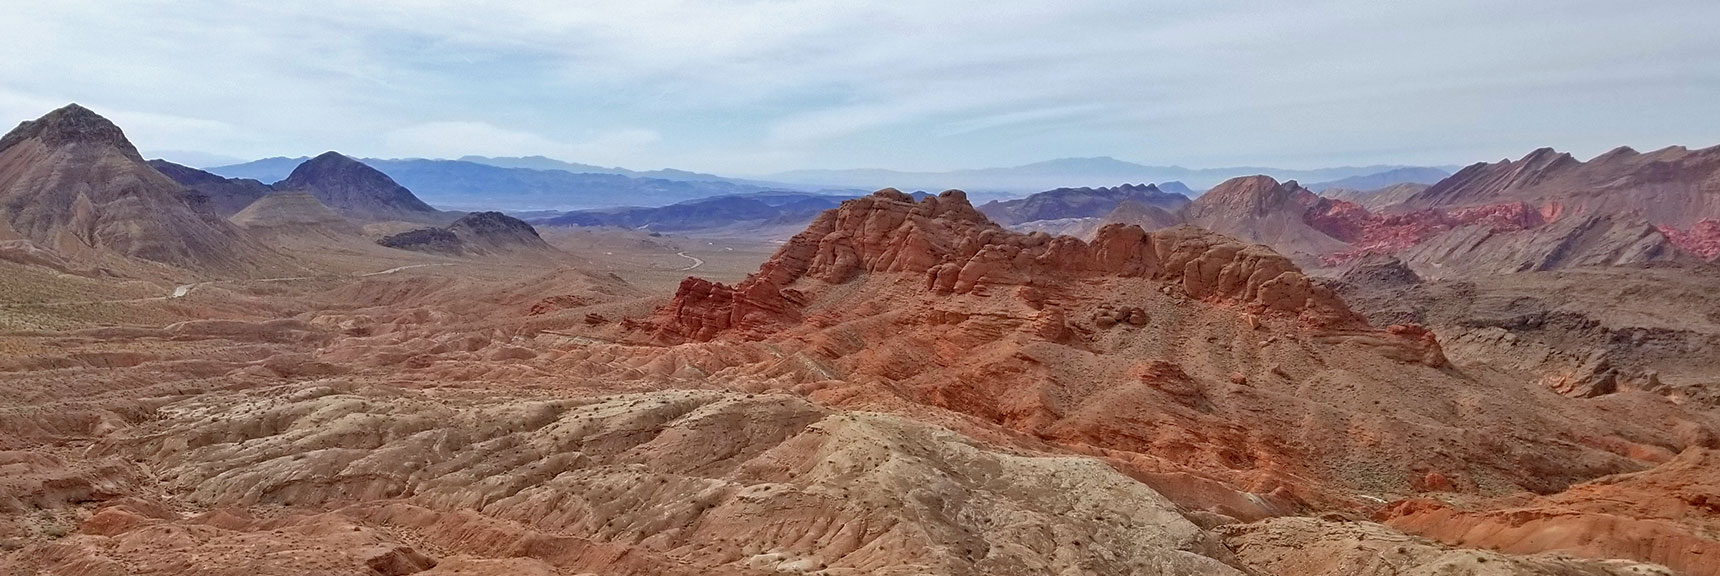 View from Summit of Northshore Summit Trail On Northshore Road in Lake Mead National Park, Nevada